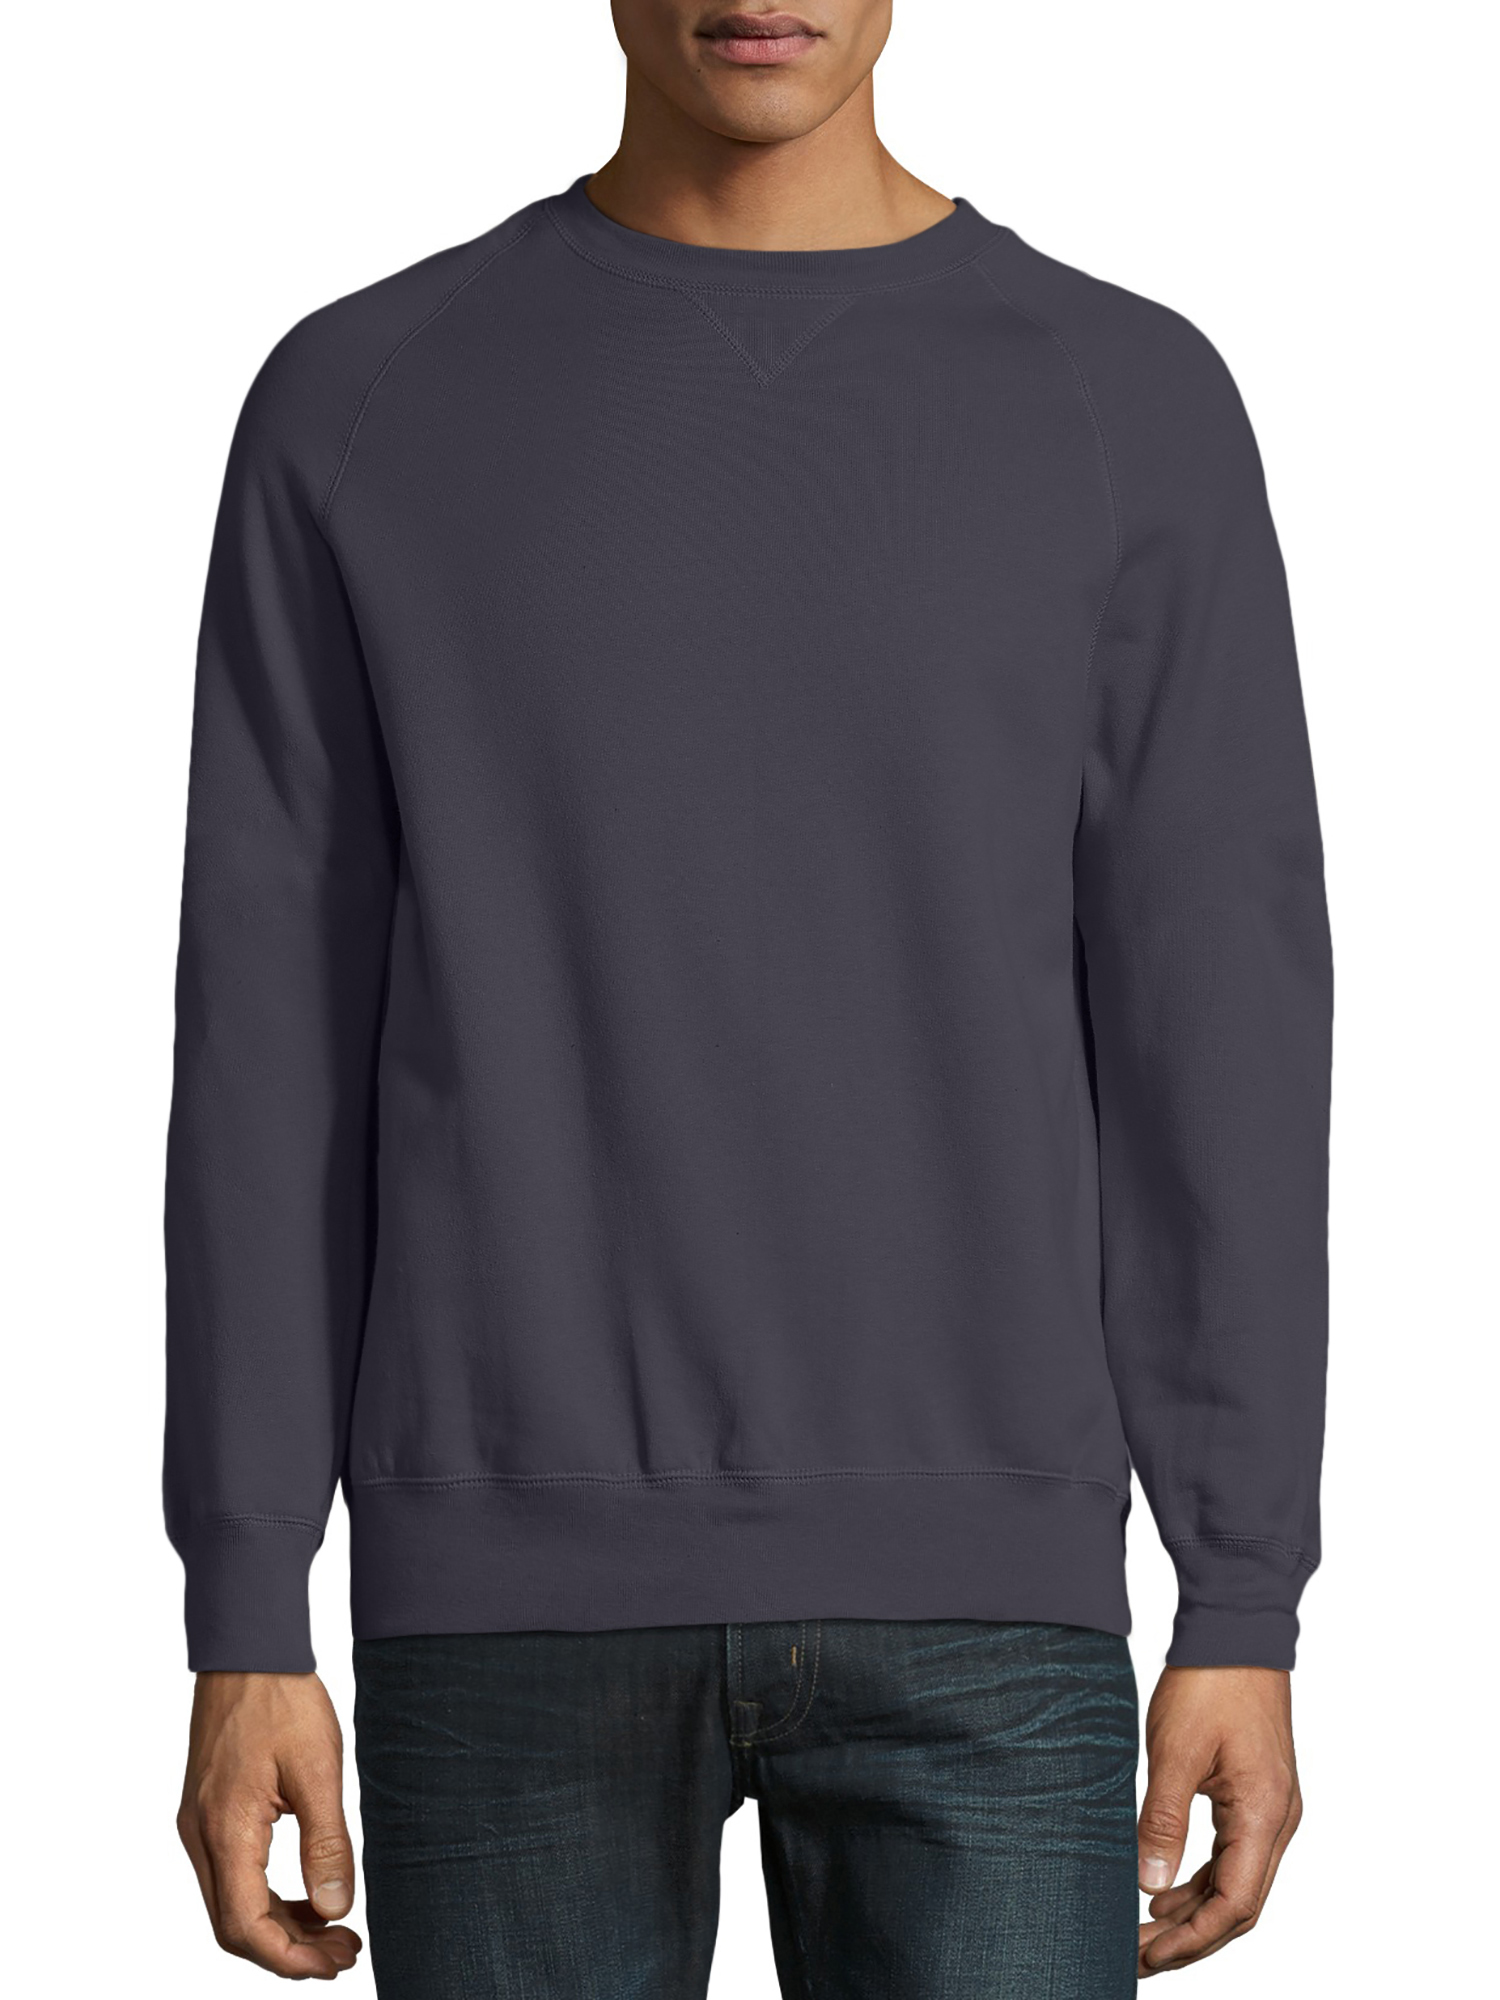 Hanes Mens Nano Fleece Crewneck Sweatshirt S M L XL 2XL 3XL N260